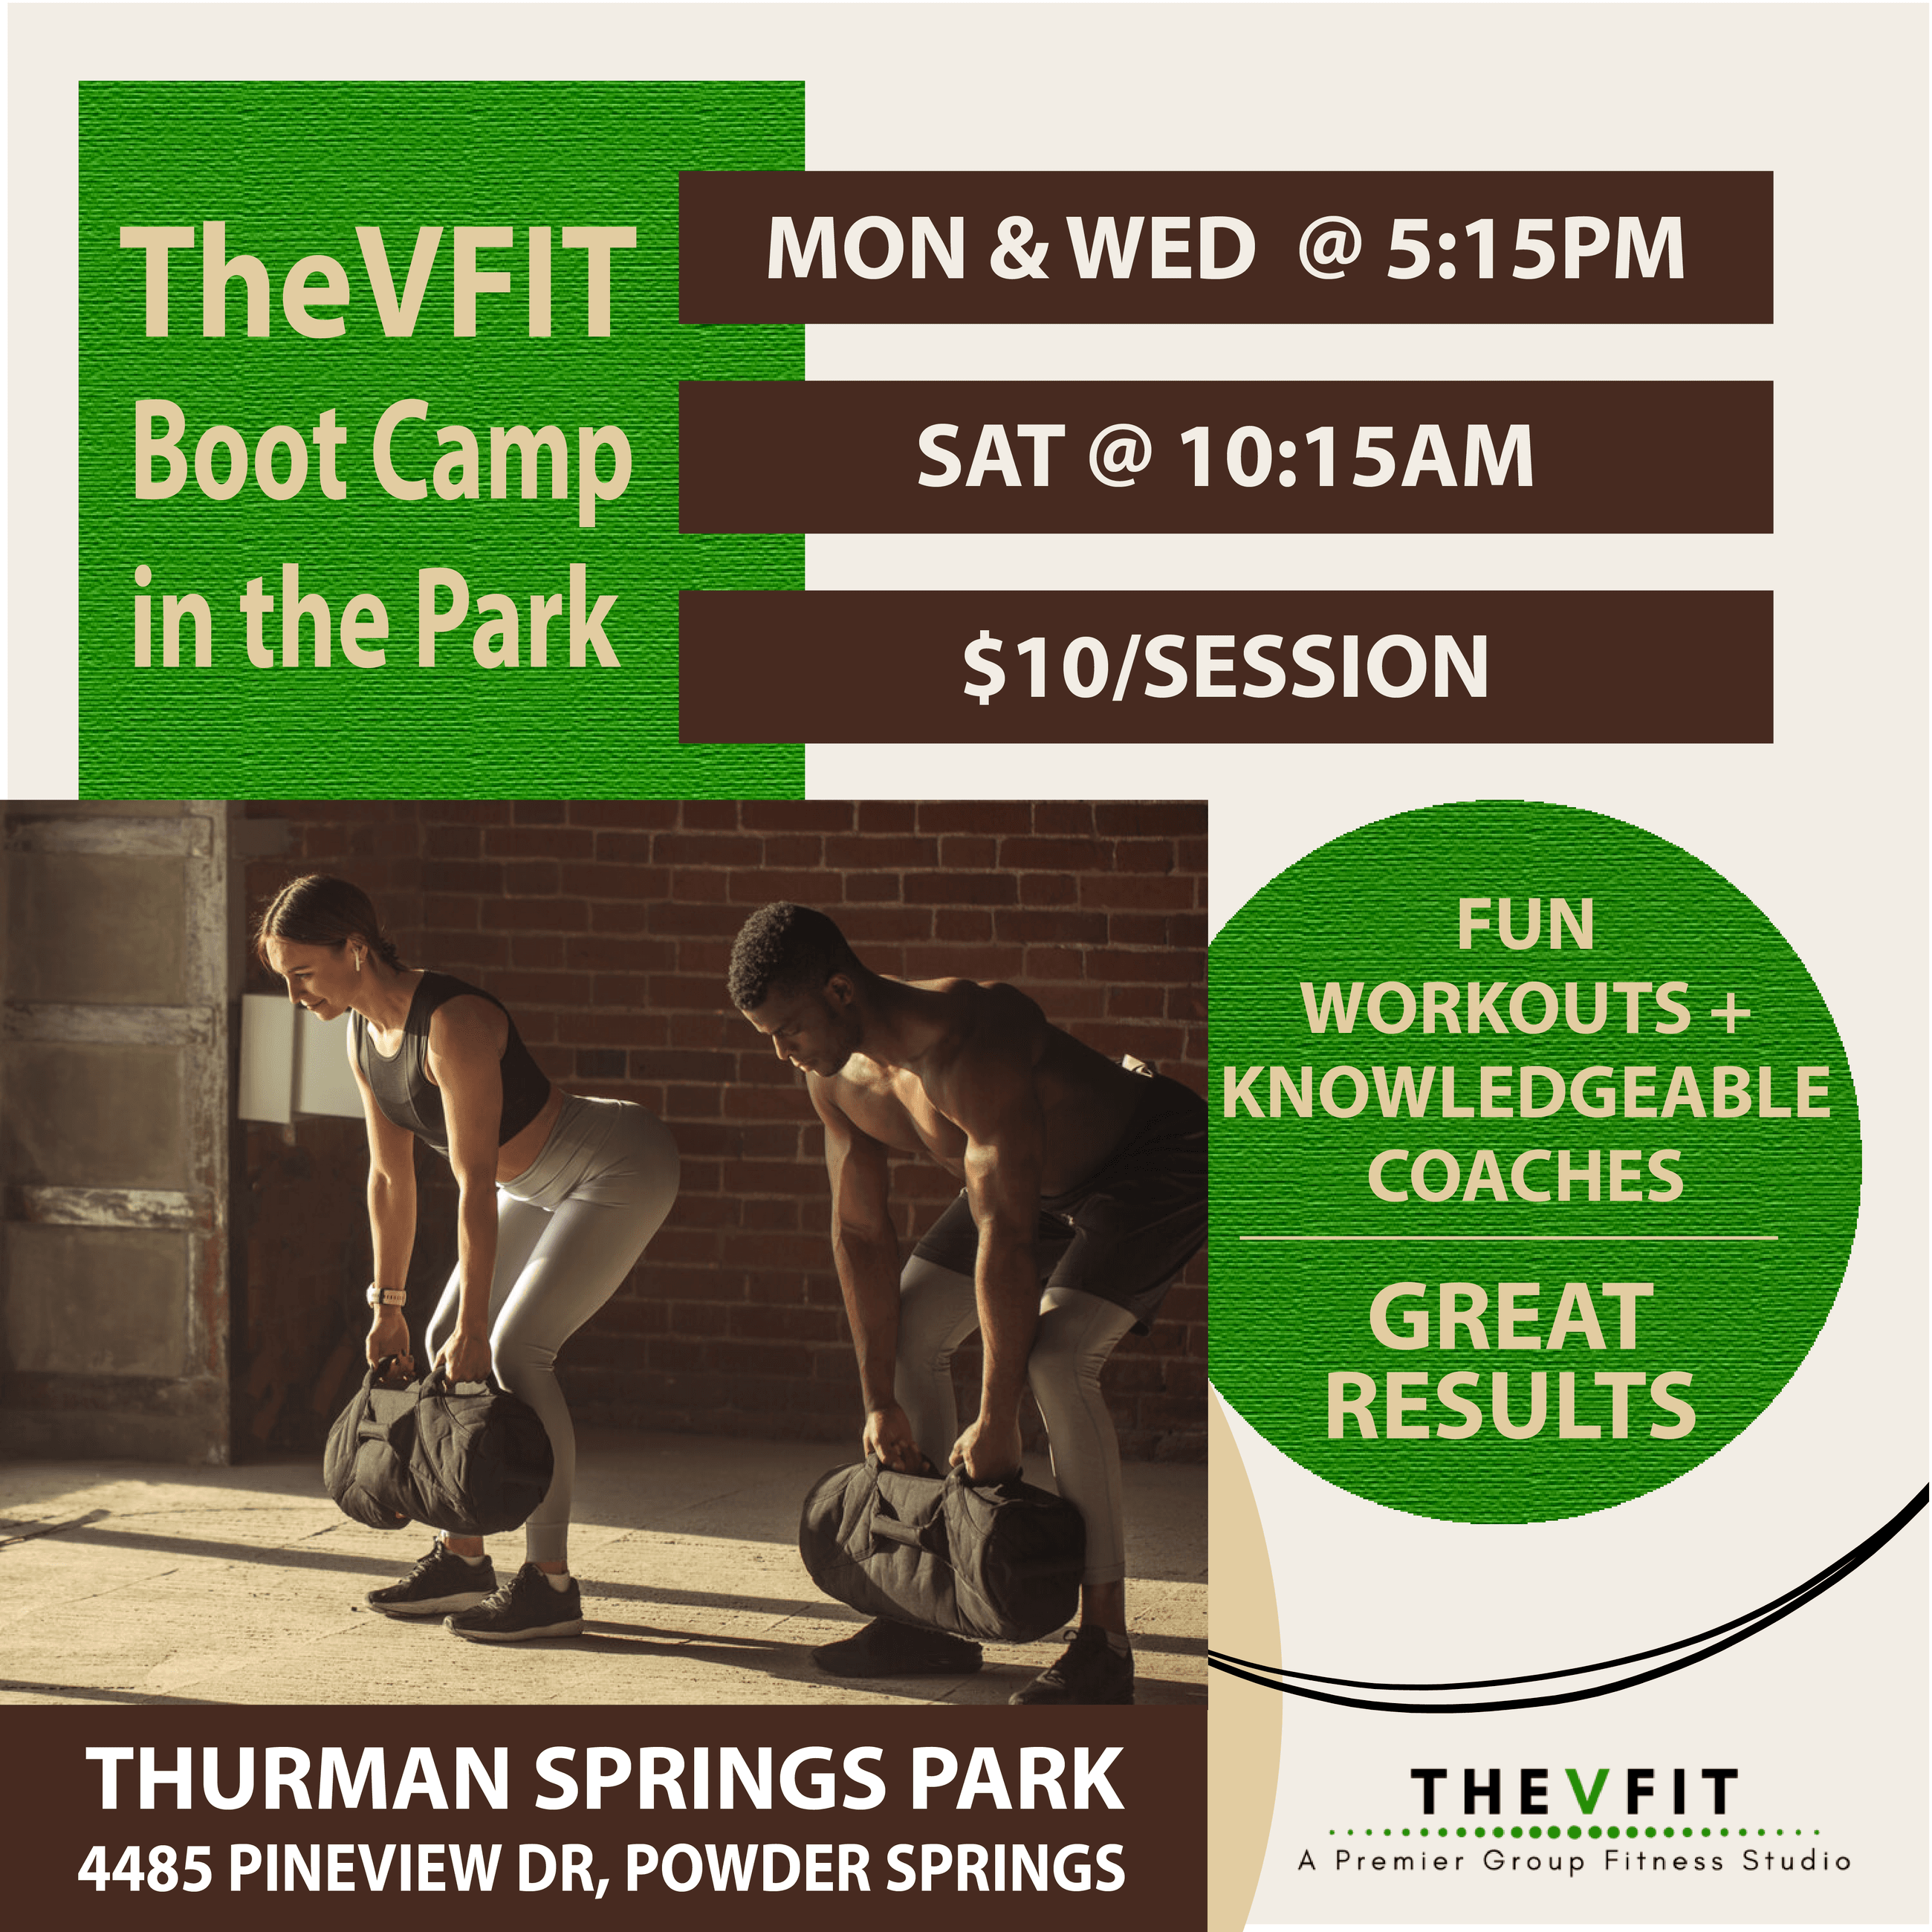 TheVFIT poster graphic with times and location.